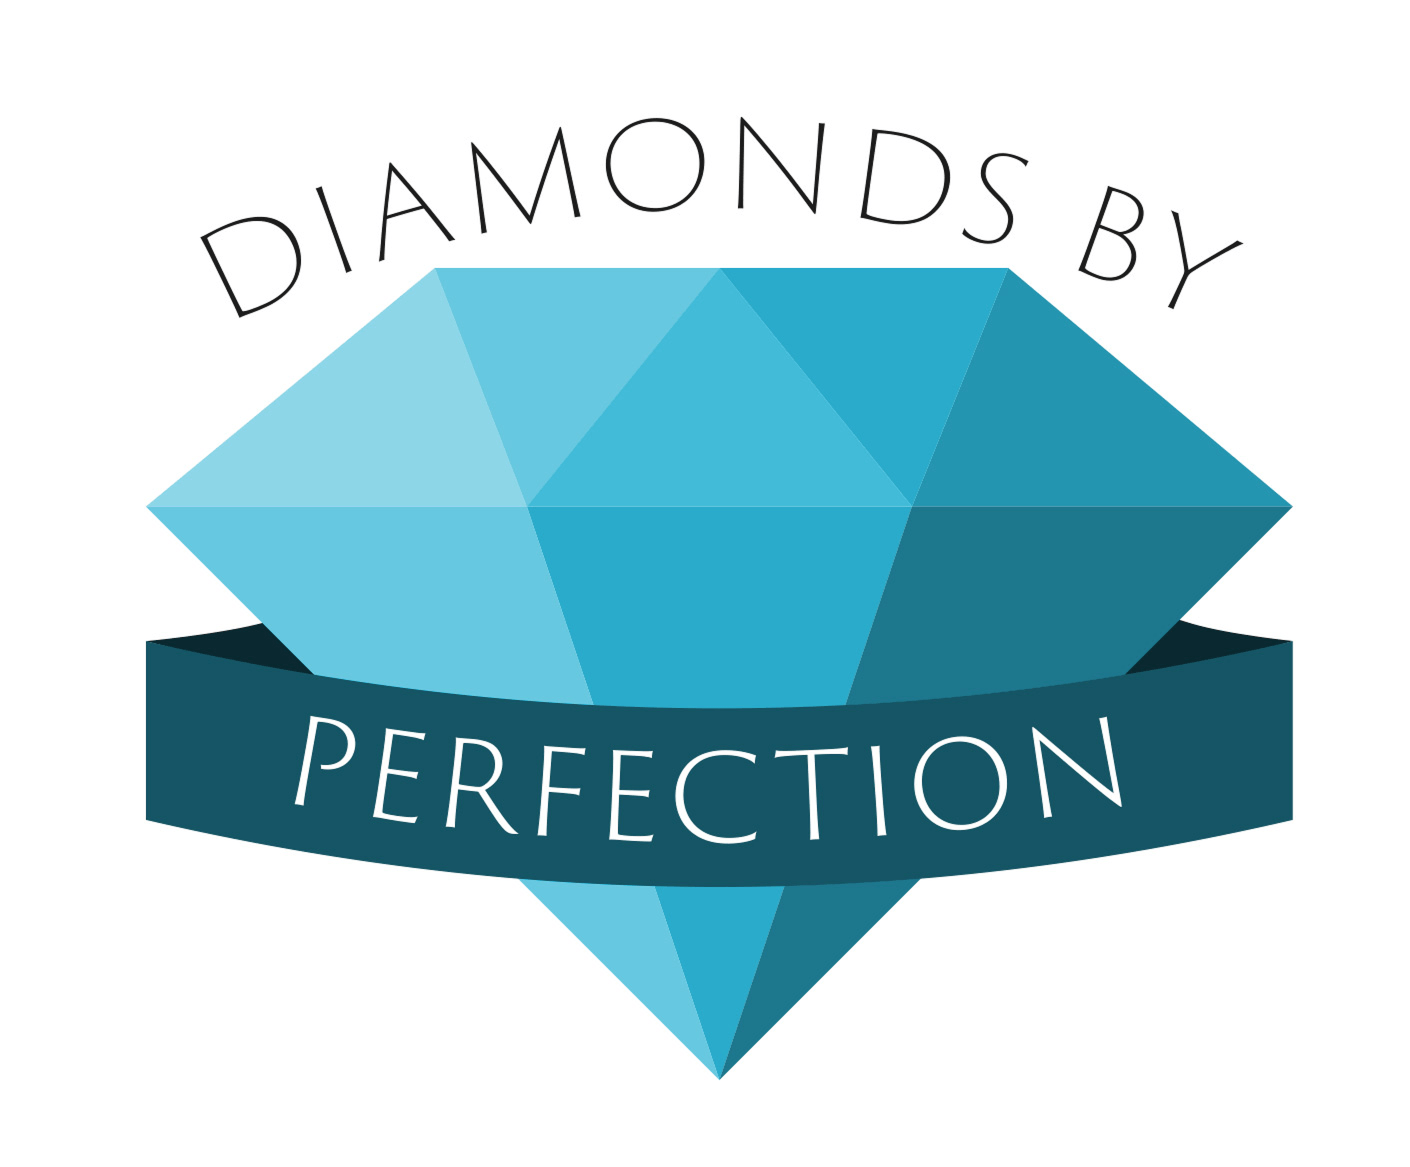 Perfection Jewellery Ltd